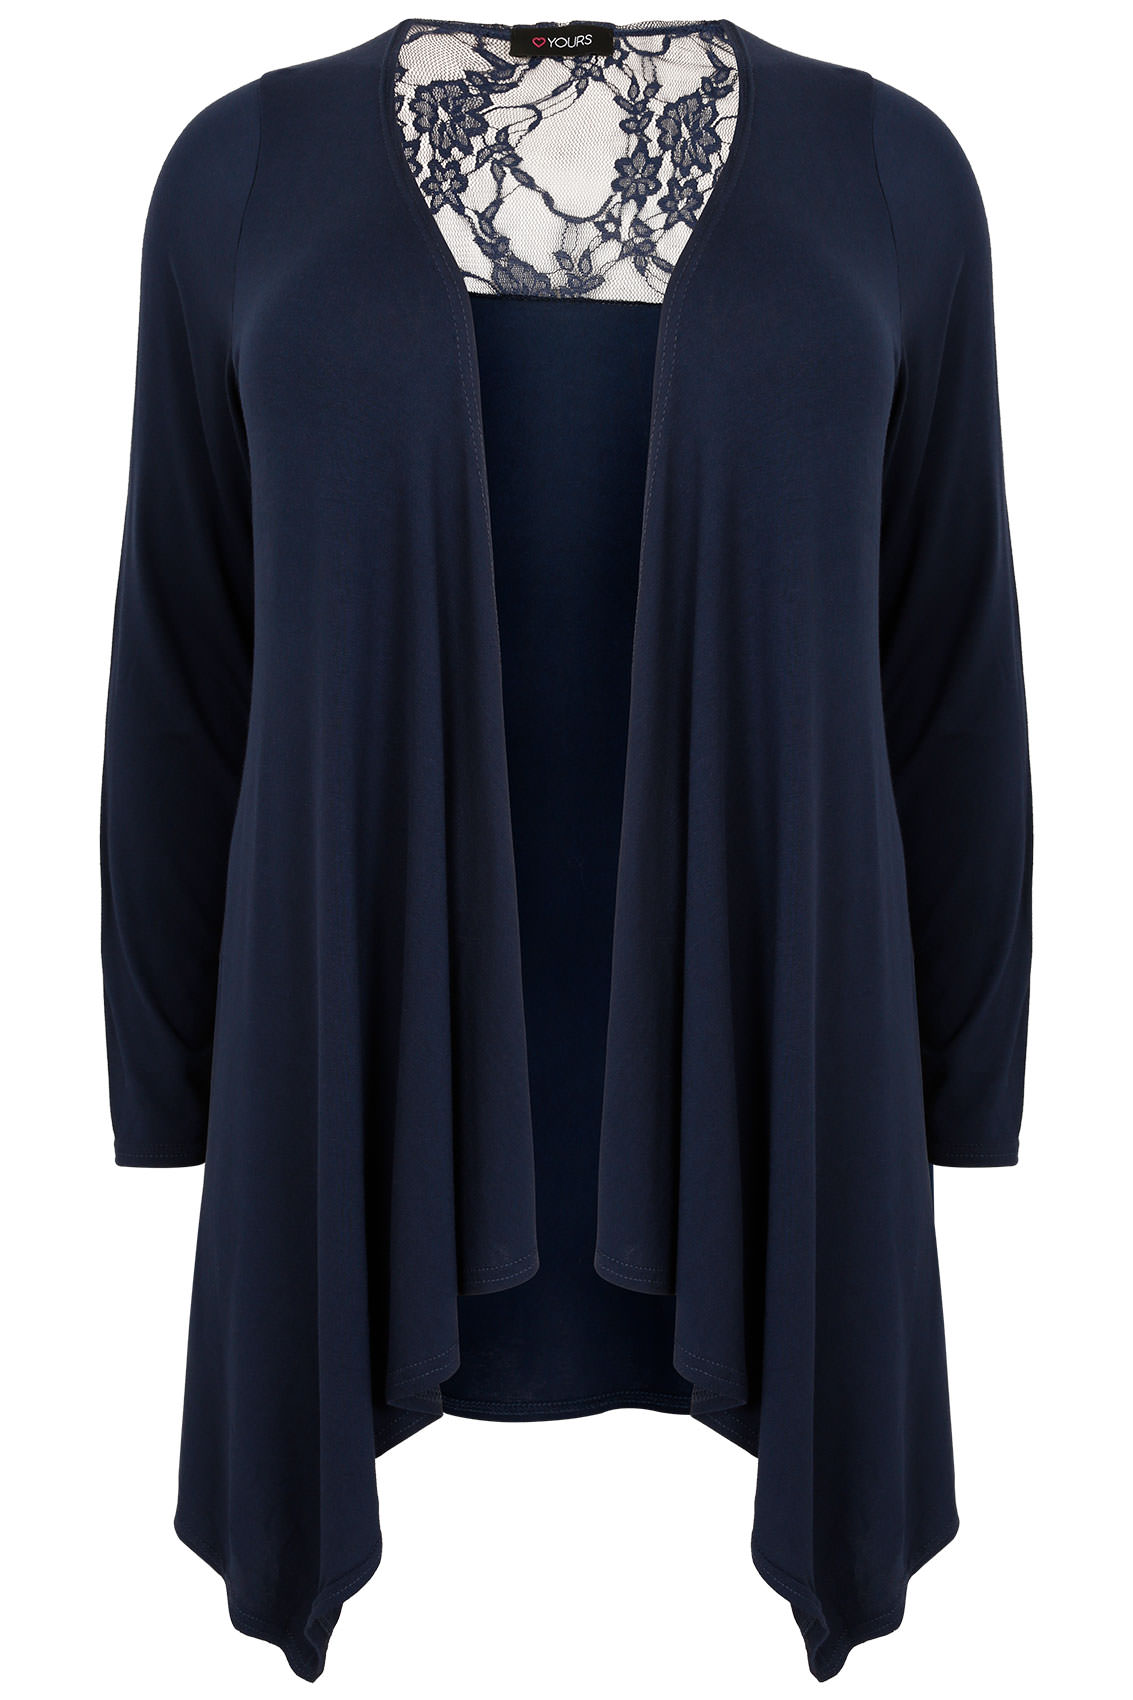 Navy Edge To Edge Waterfall Jersey Cardigan With Lace Panel Plus ...